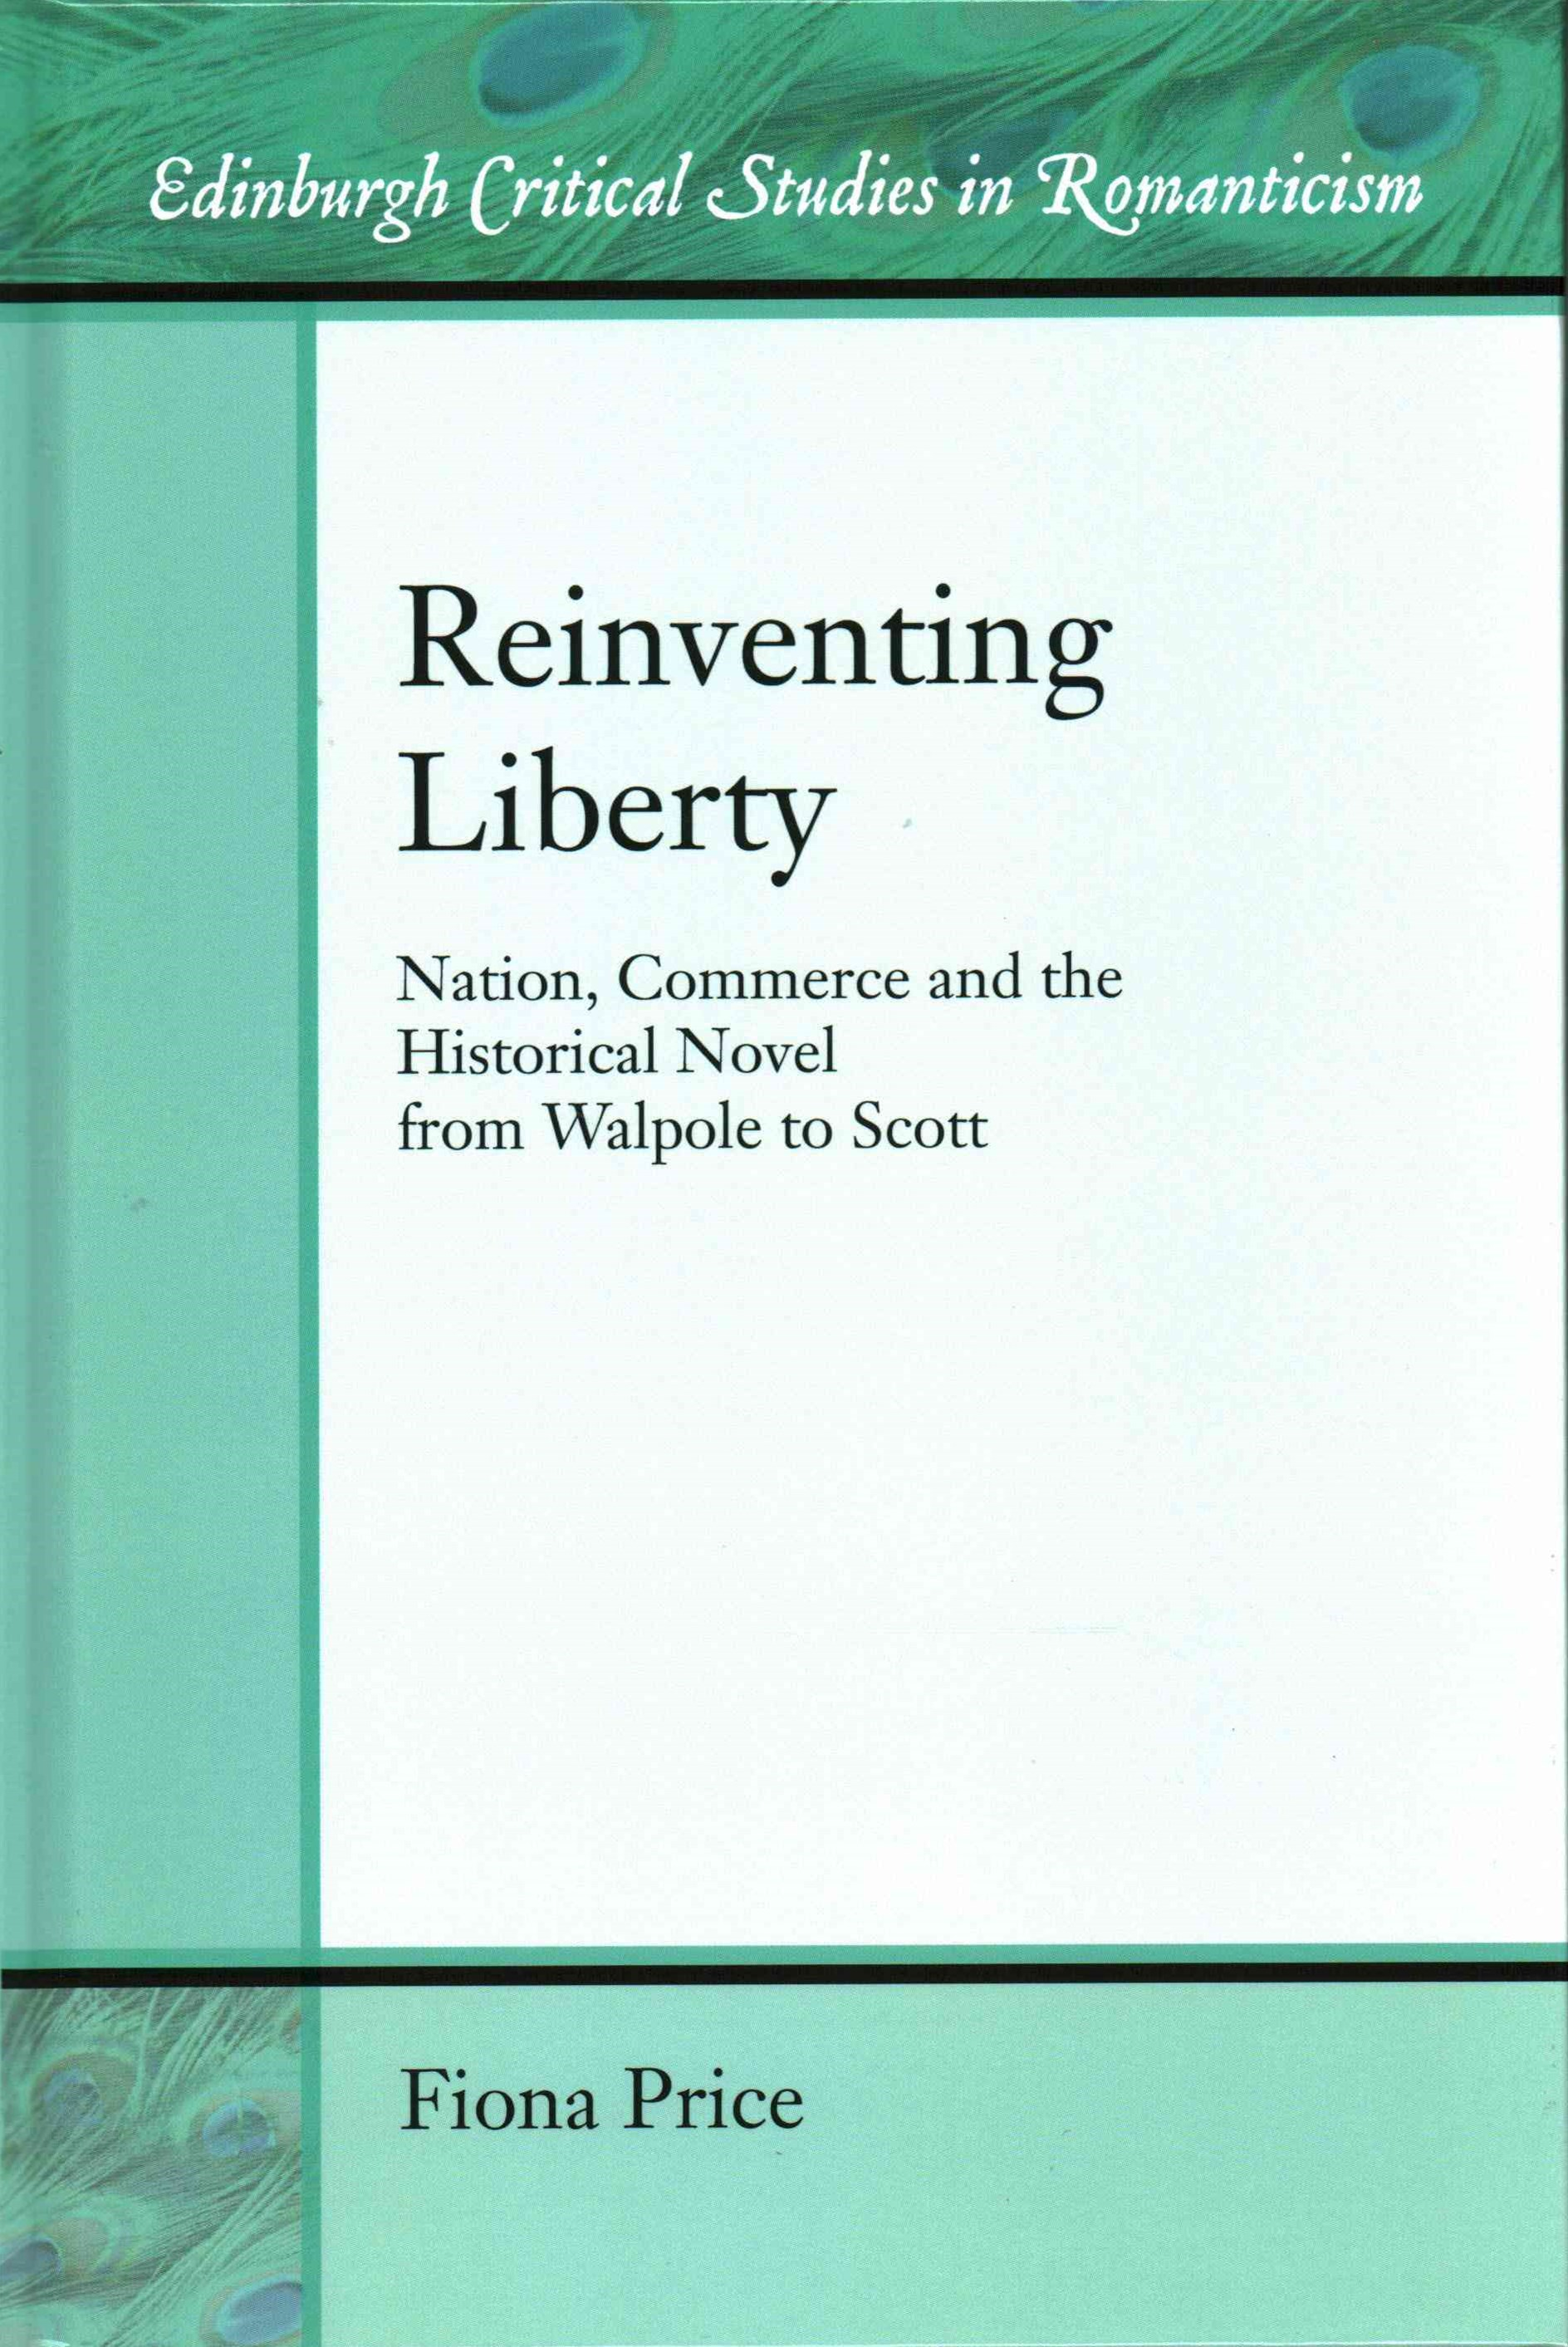 Reinventing Liberty